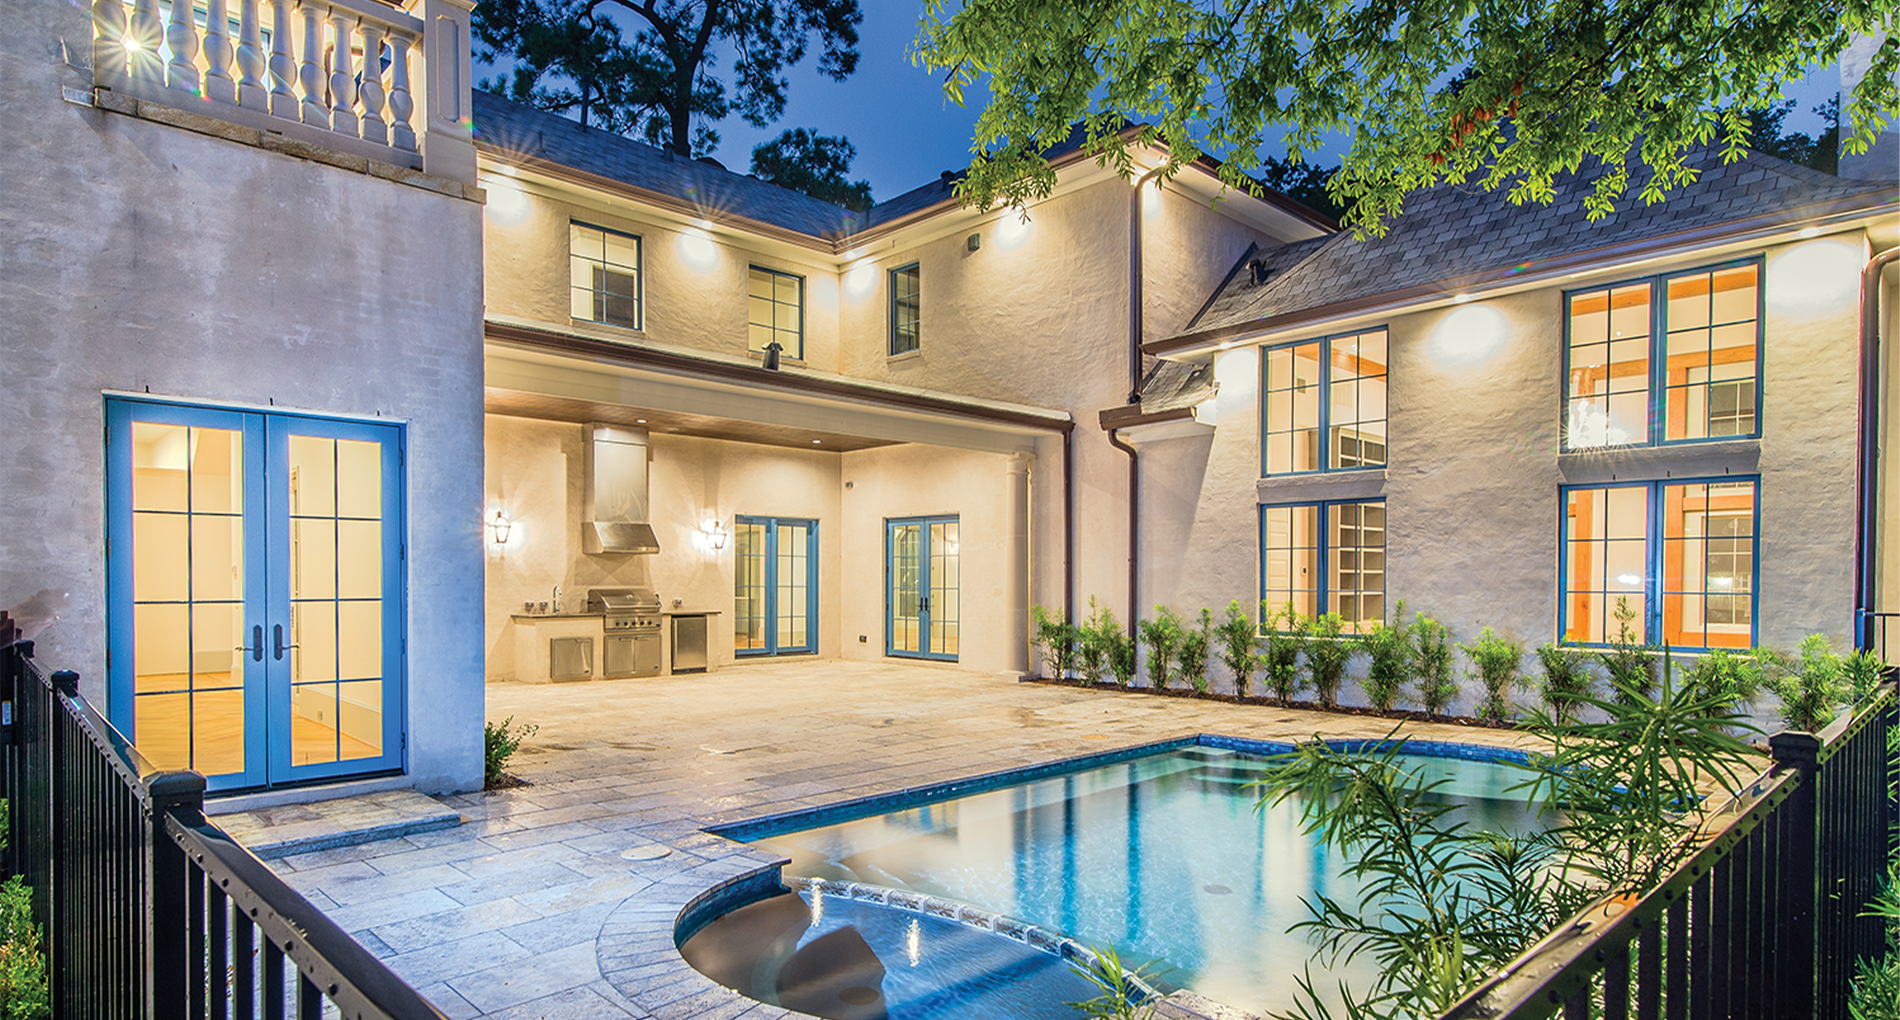 alair-homes-dallas-new-custom-home-transitional-maple-valley-feature-image-png